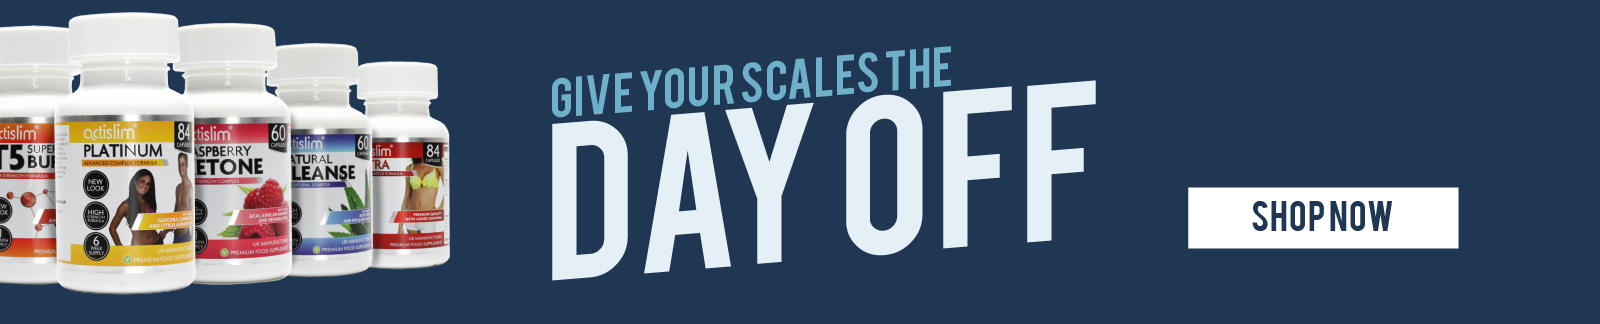 Give your scales the day off